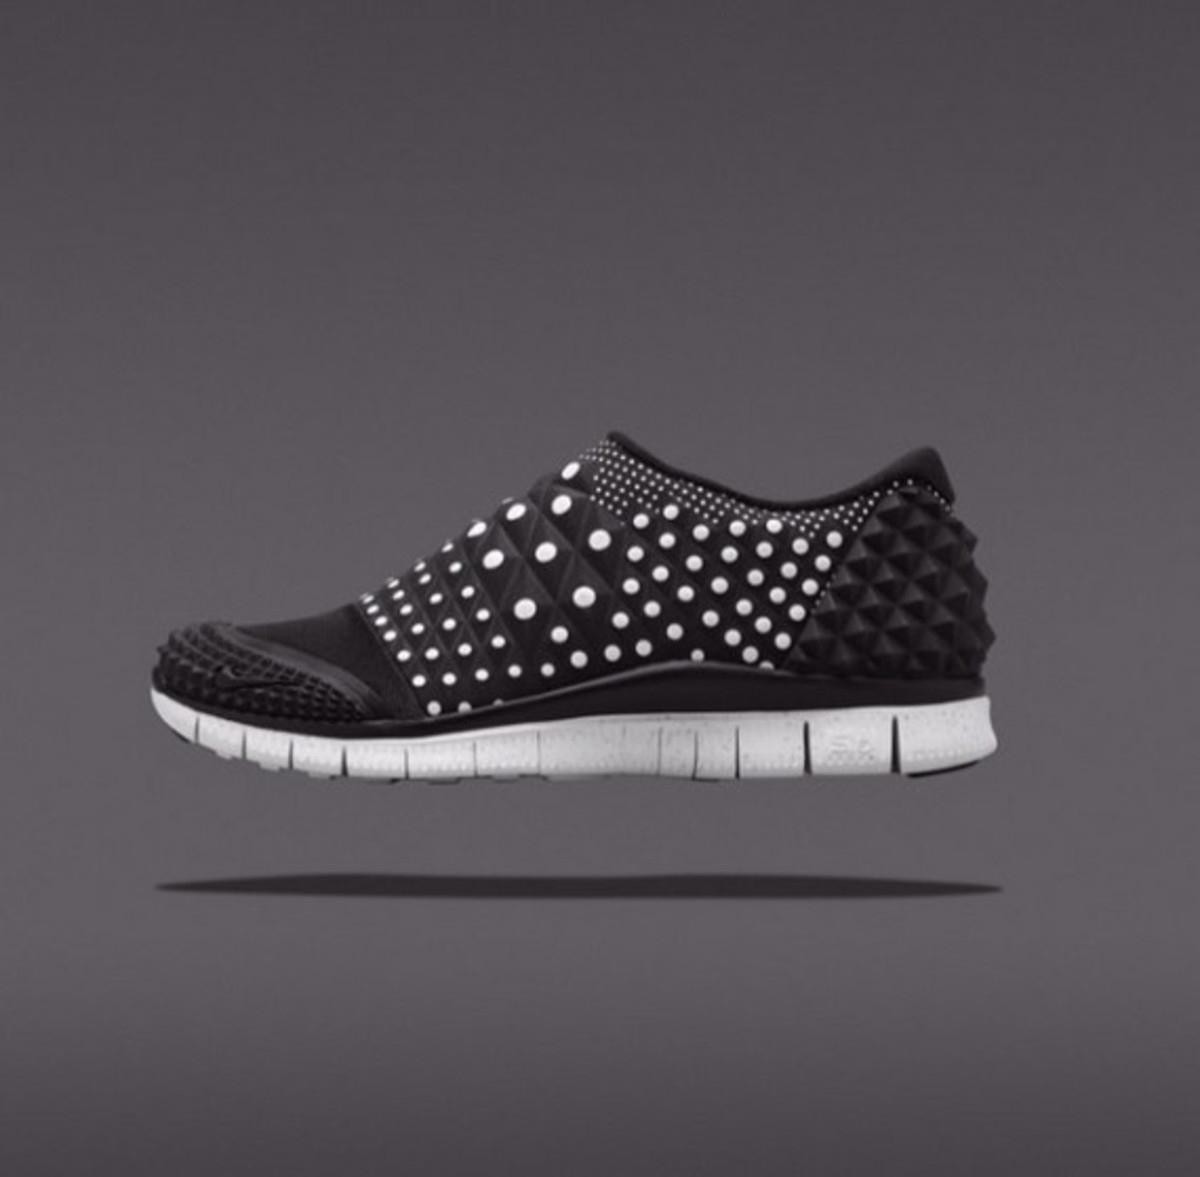 nike-free-orbit-ii-sp-polka-dot-pack-05